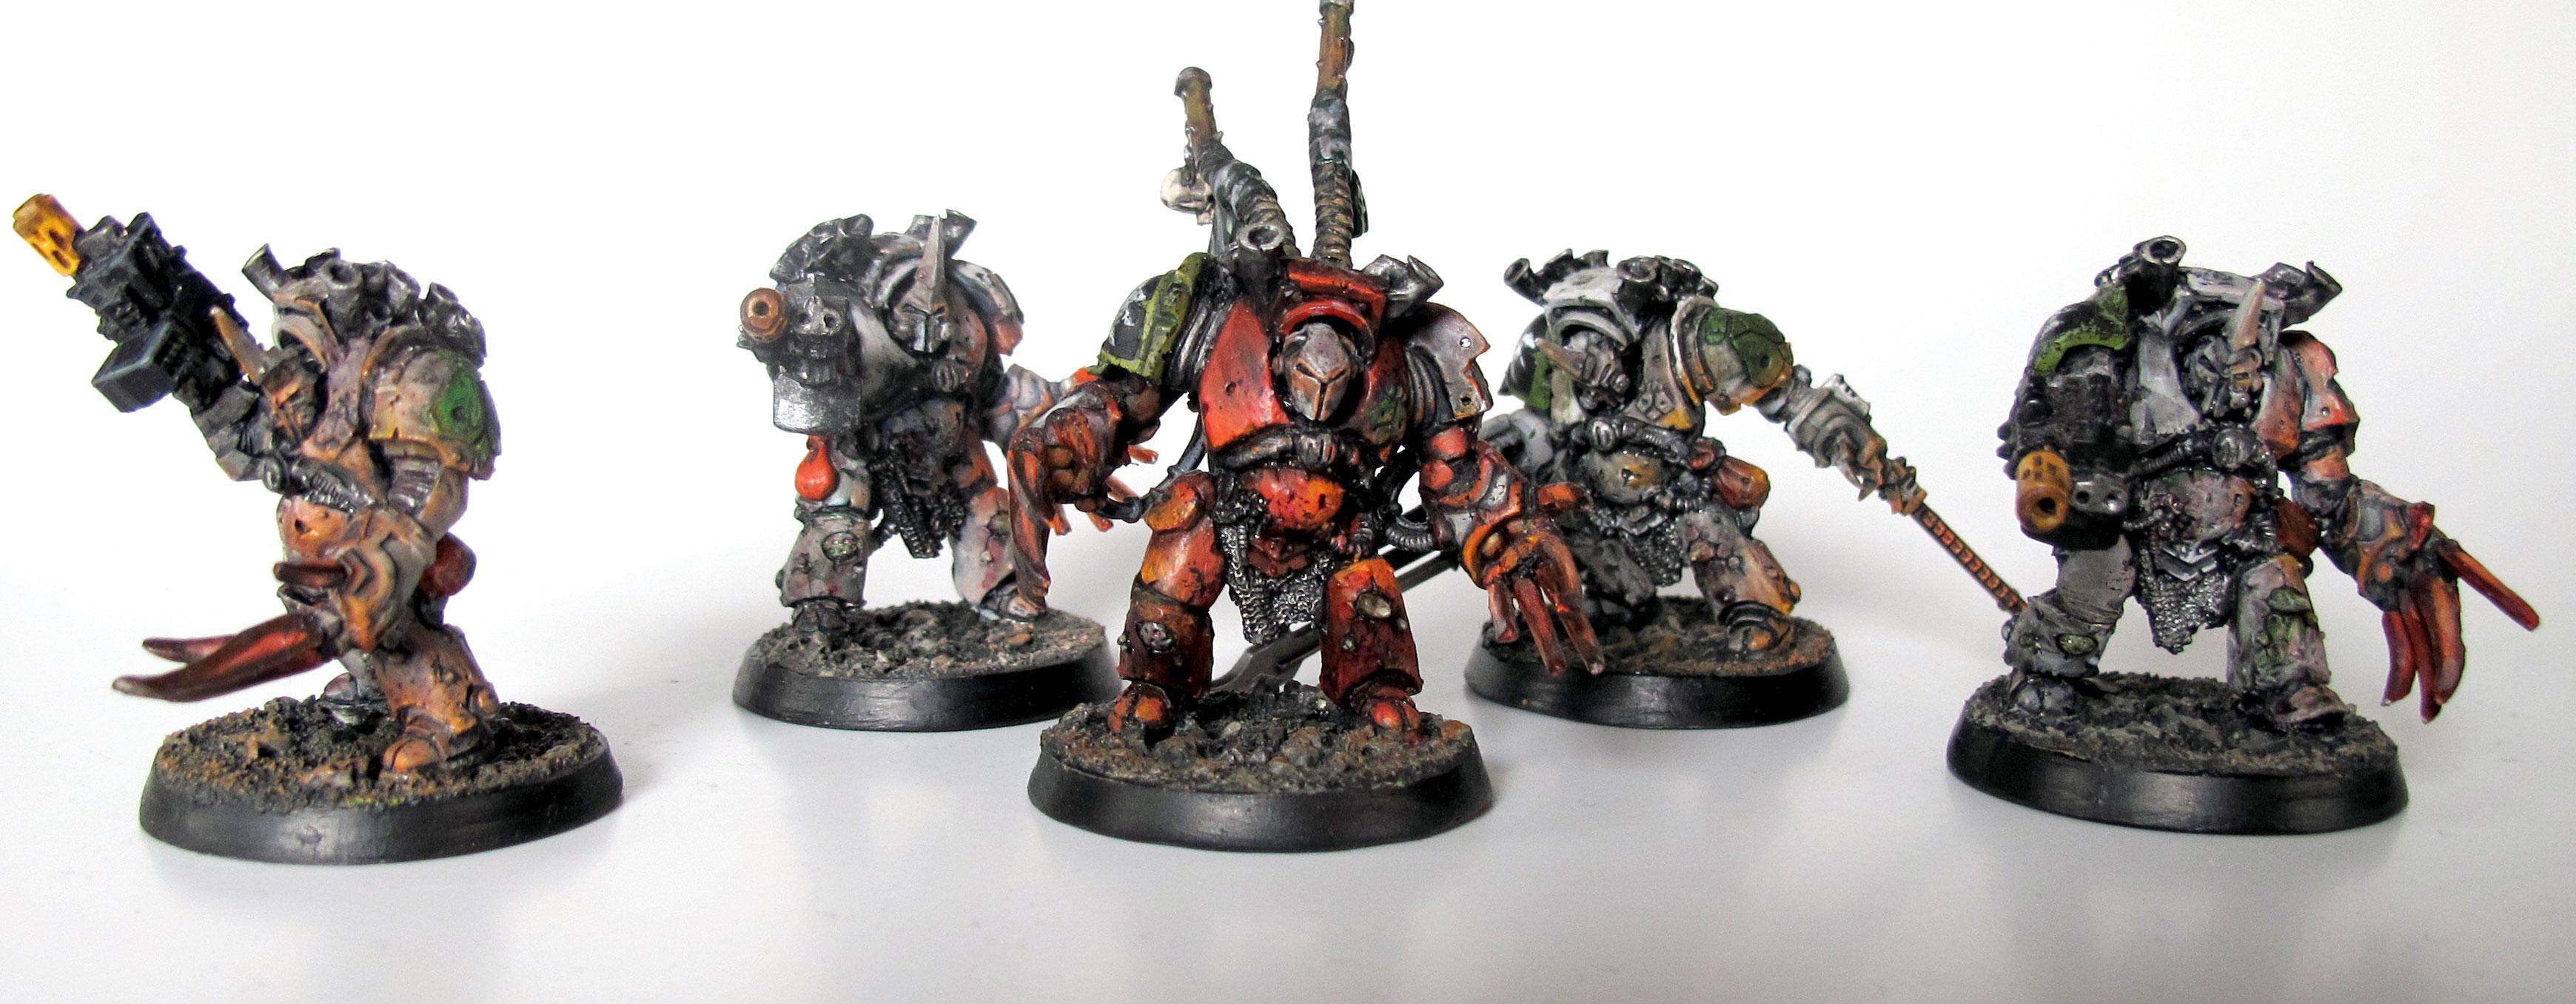 Cast, Champion, Chaos Space Marines, Chaos Terminators, Chosen, Death Guard, Lightning Claws, Resin